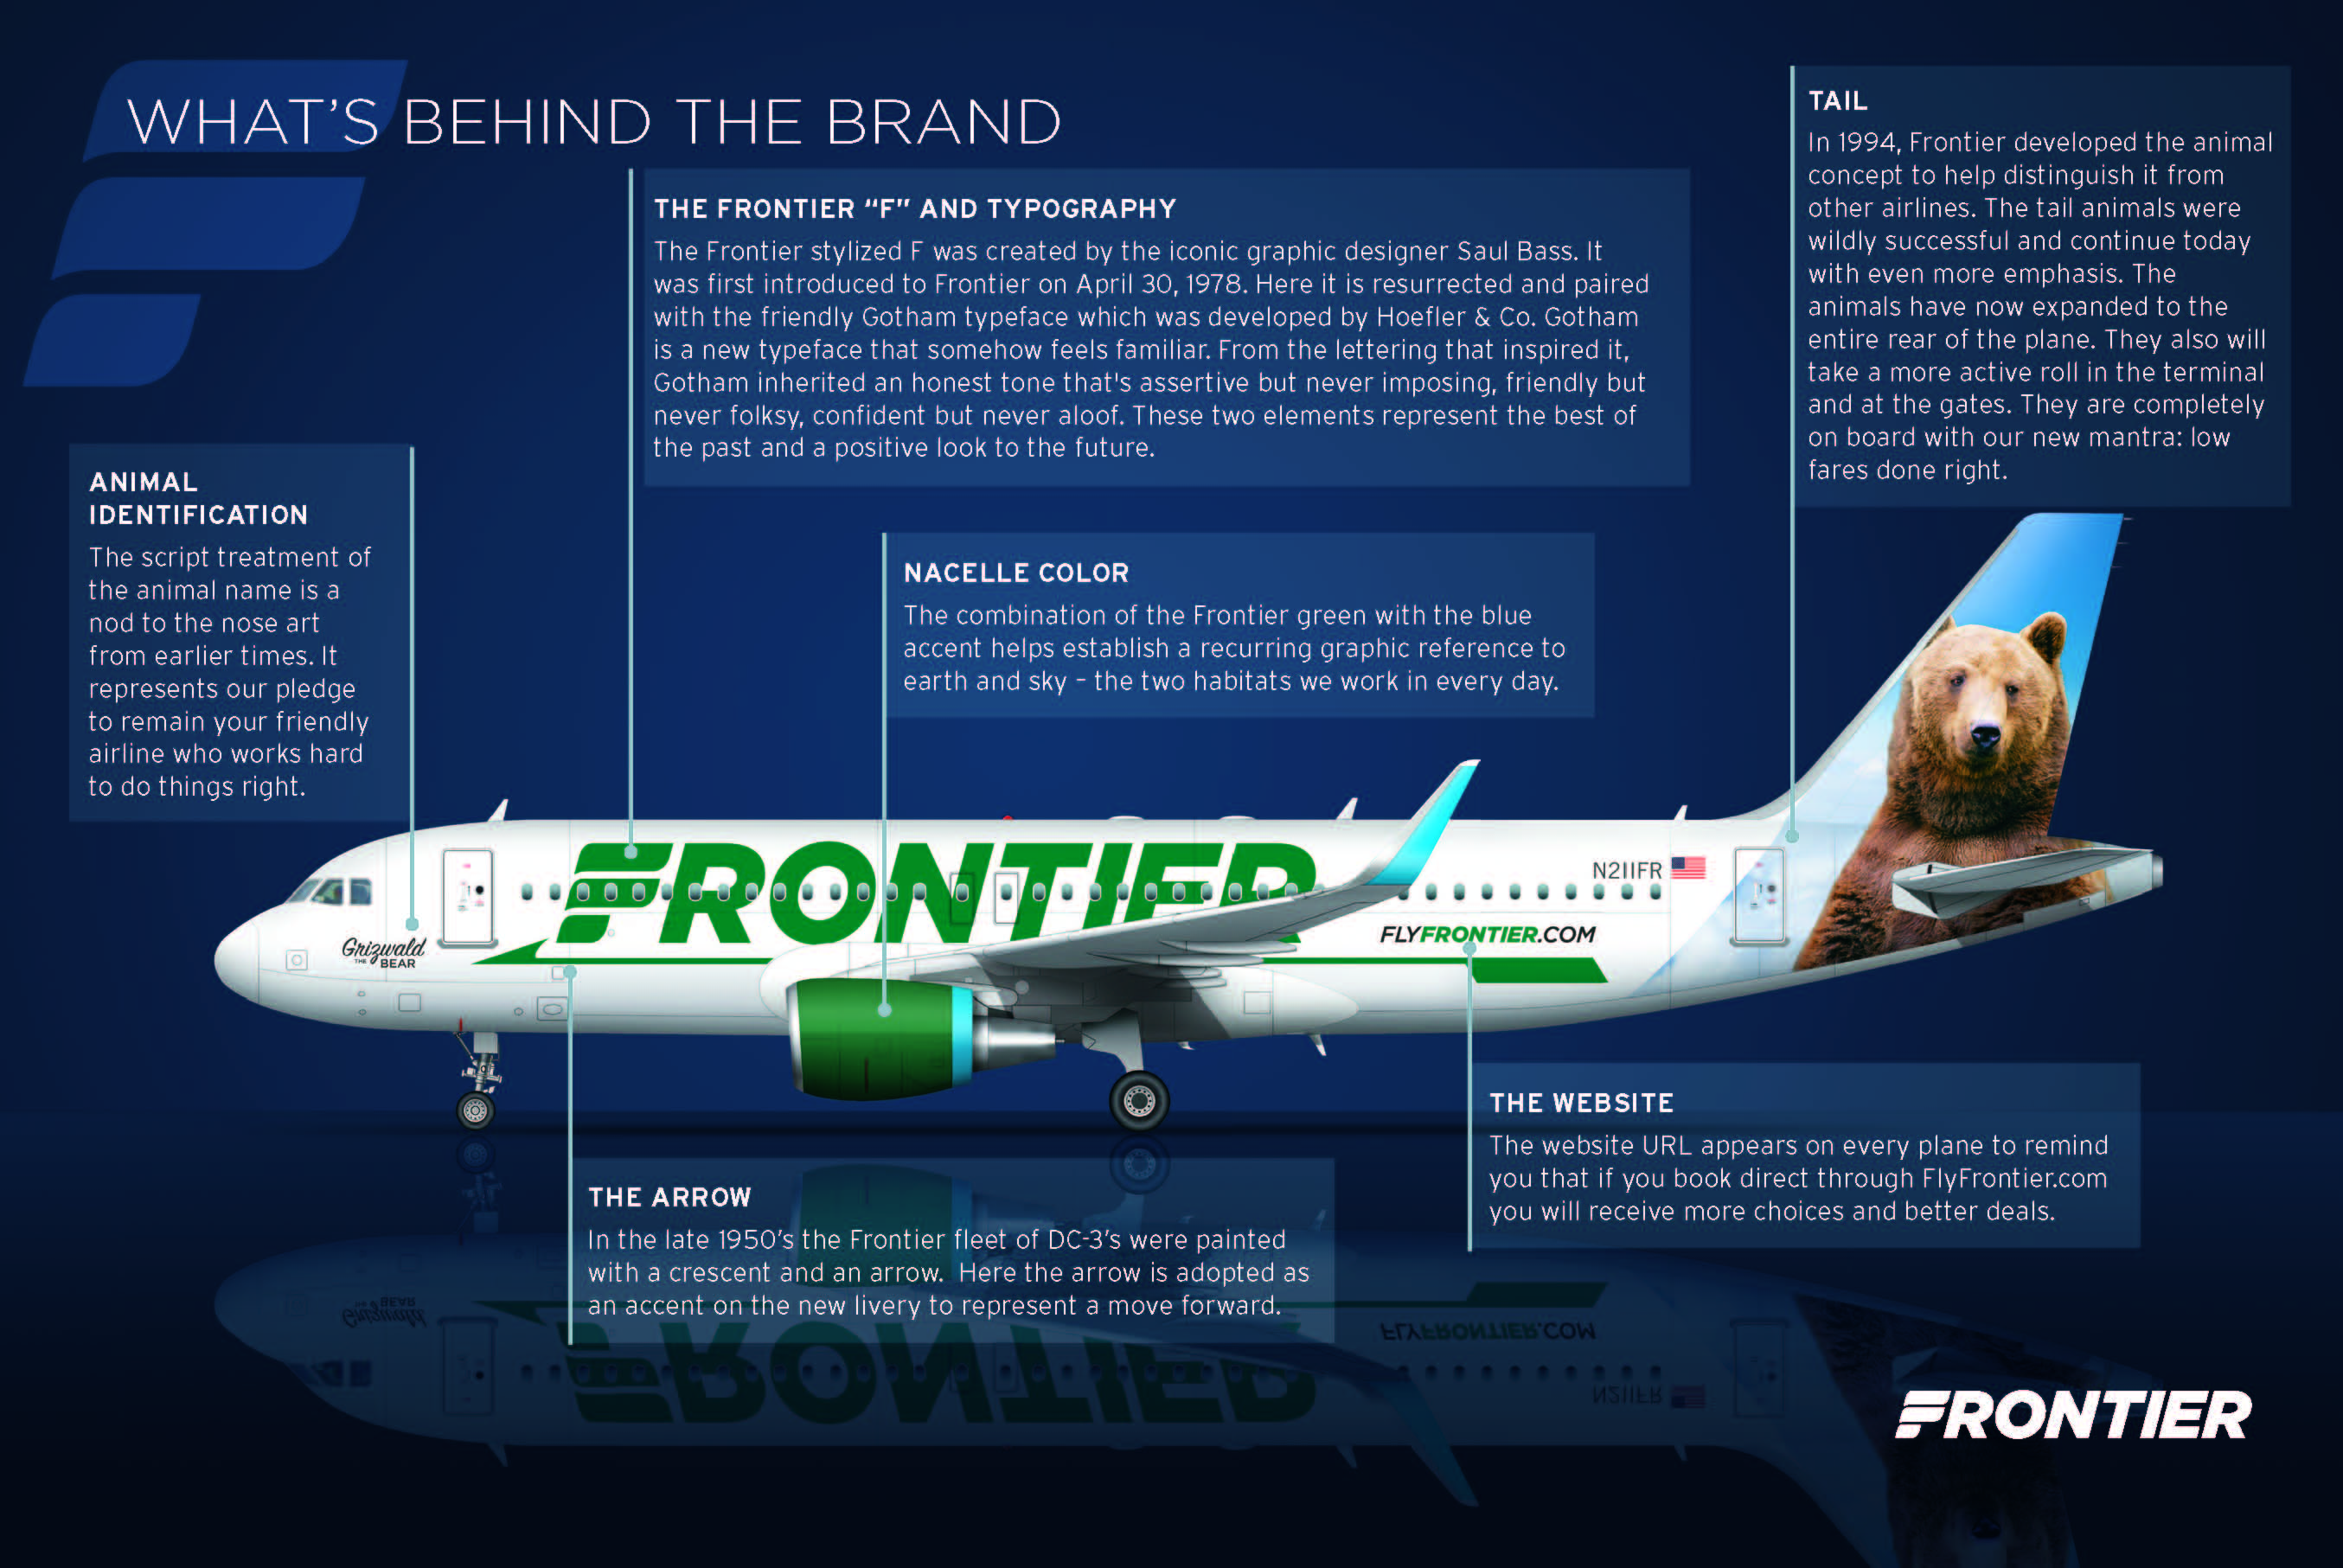 Explanation of Frontier's new livery